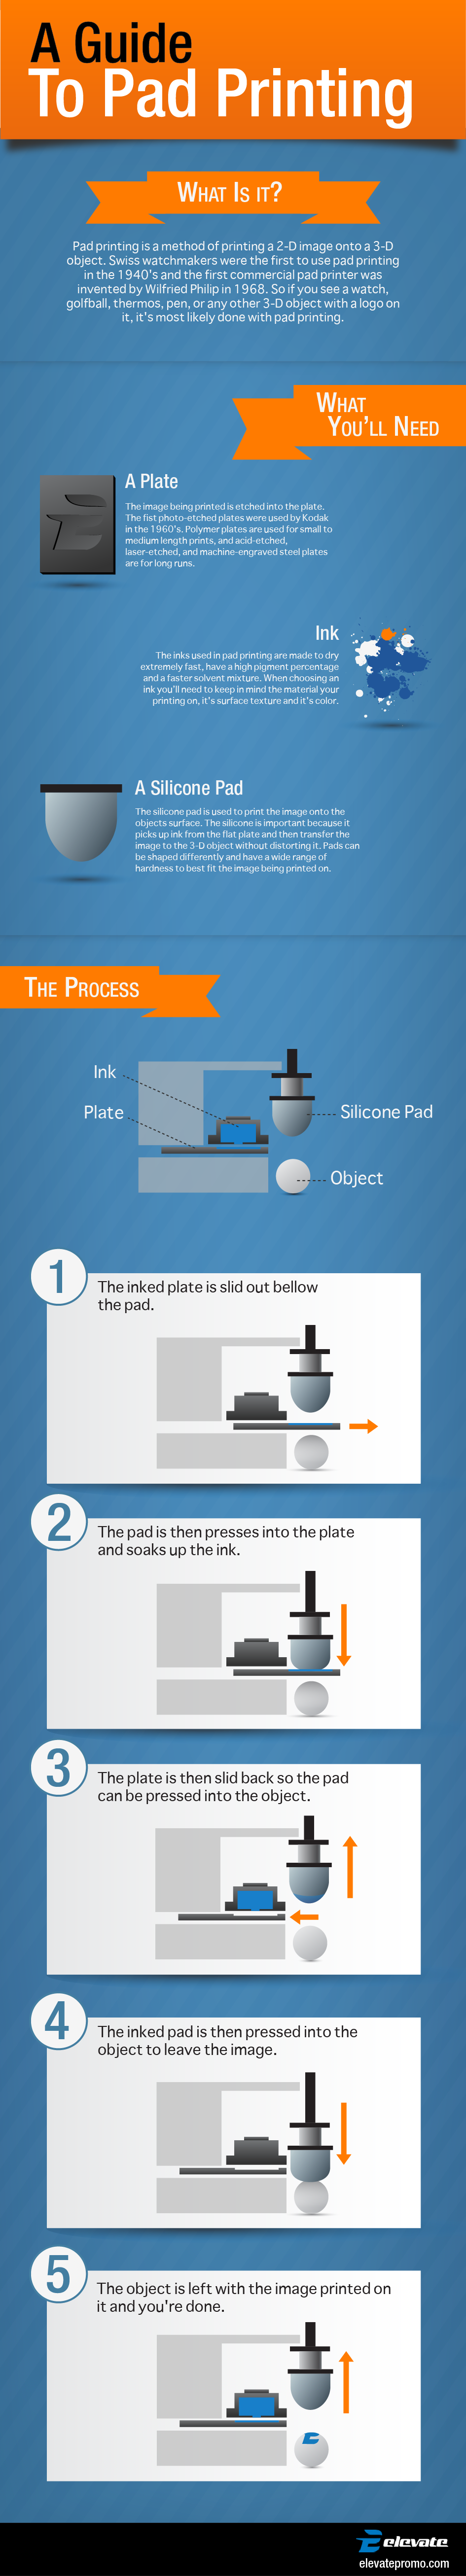 3D Object Pad Printing Infographic